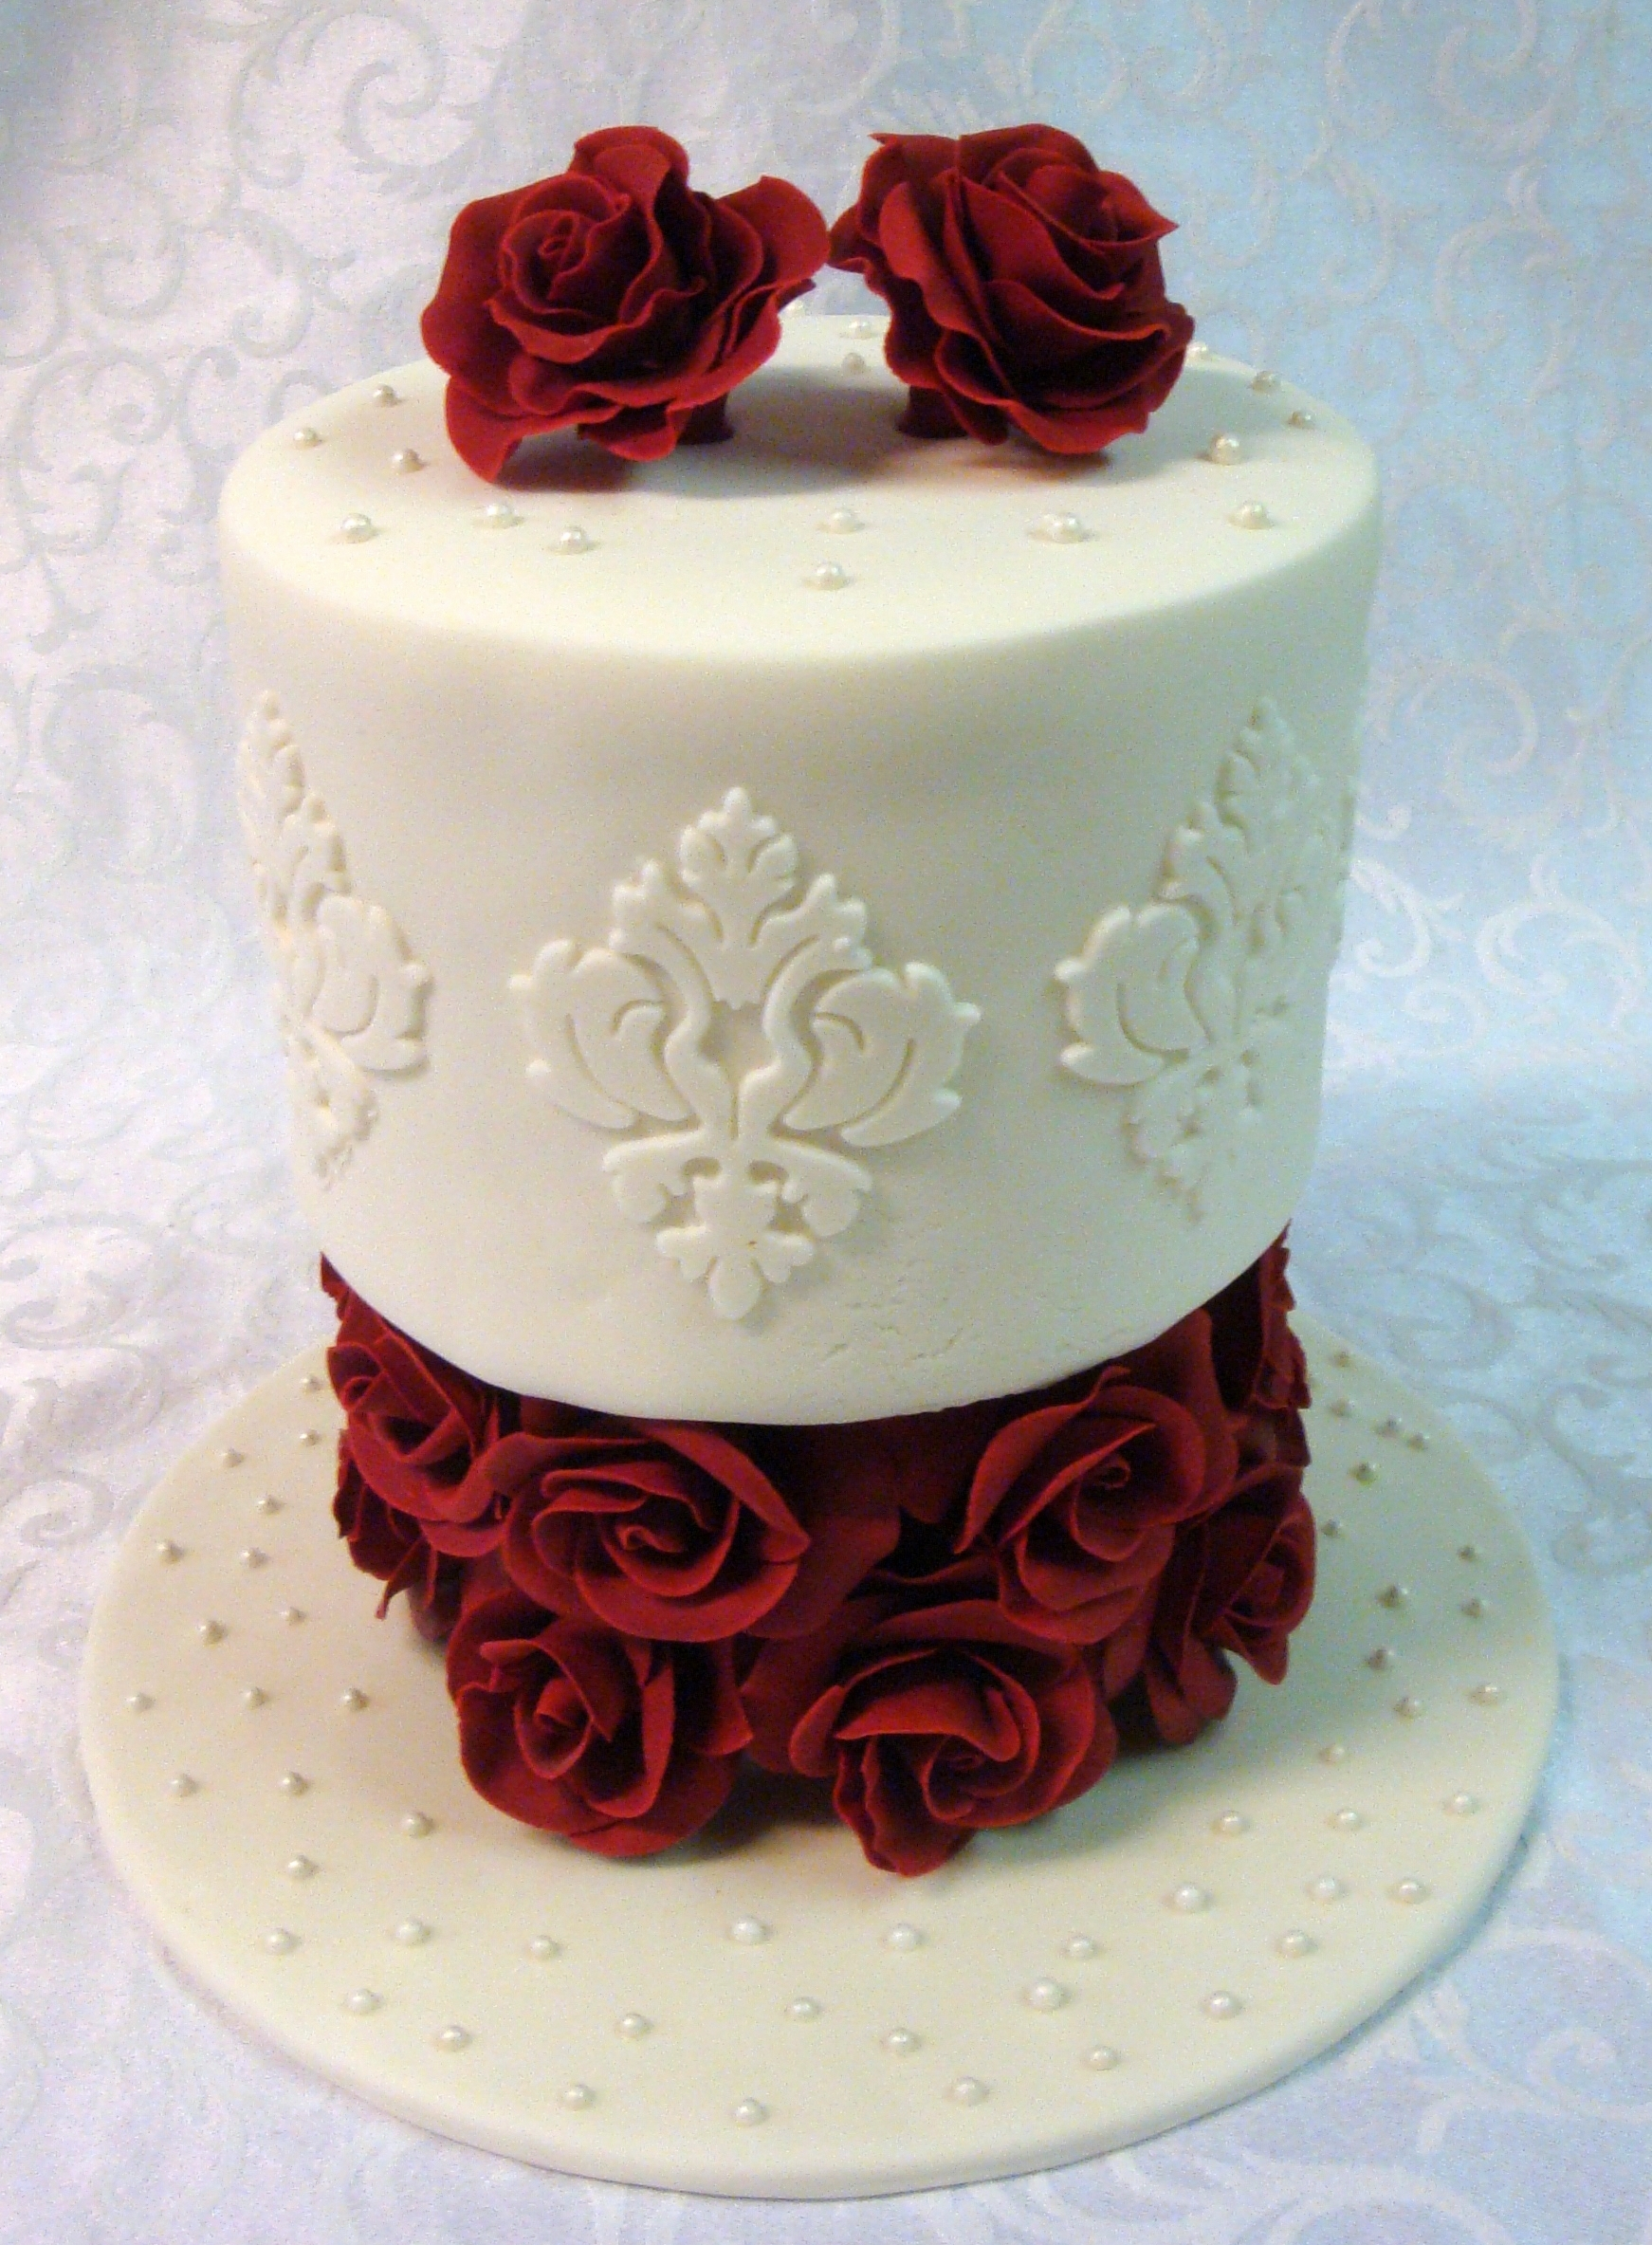 Stupendous Birthday Cake I Made For My Wife All Gumpaste Roses Base With Her Funny Birthday Cards Online Overcheapnameinfo